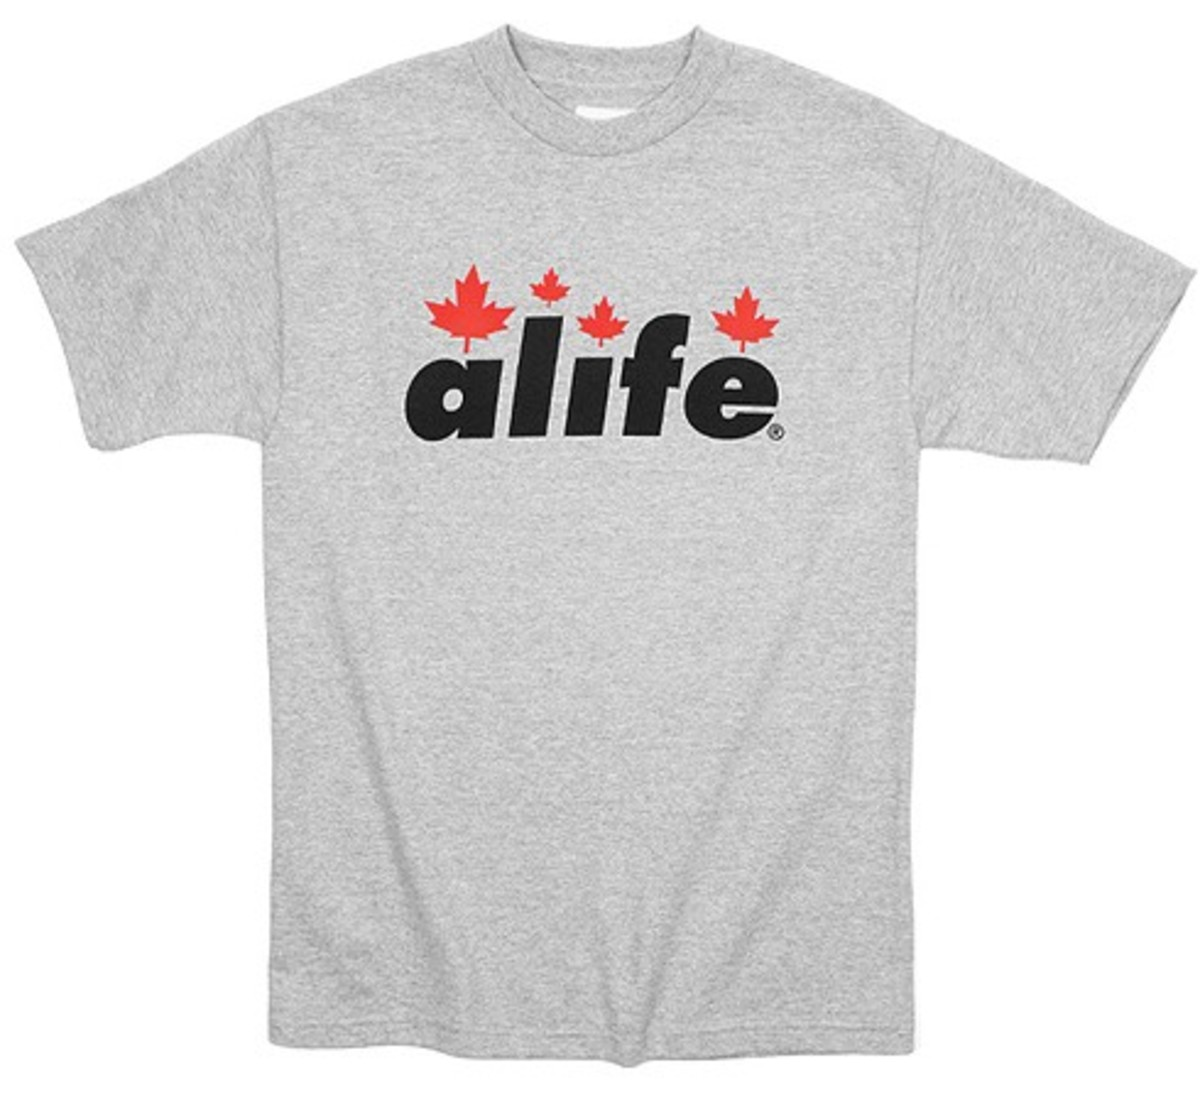 ALIFE - ALIFE Vancouver Exclusive T-Shirt